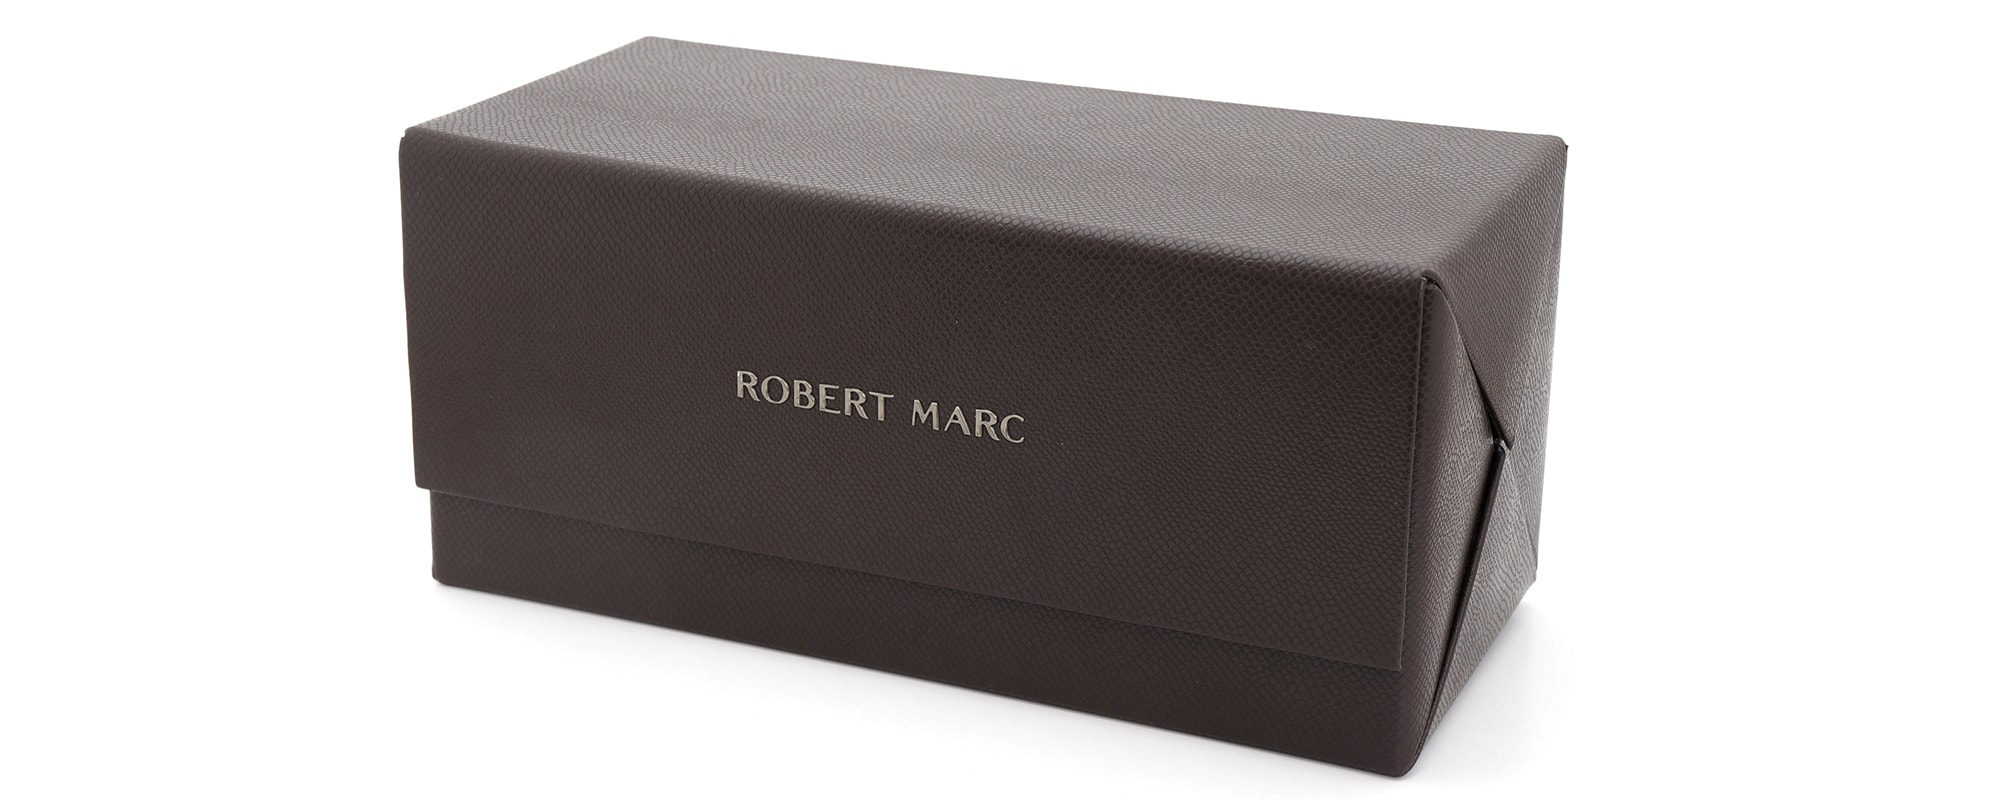 ROBERT MARC 4P-LEATHER-CASE